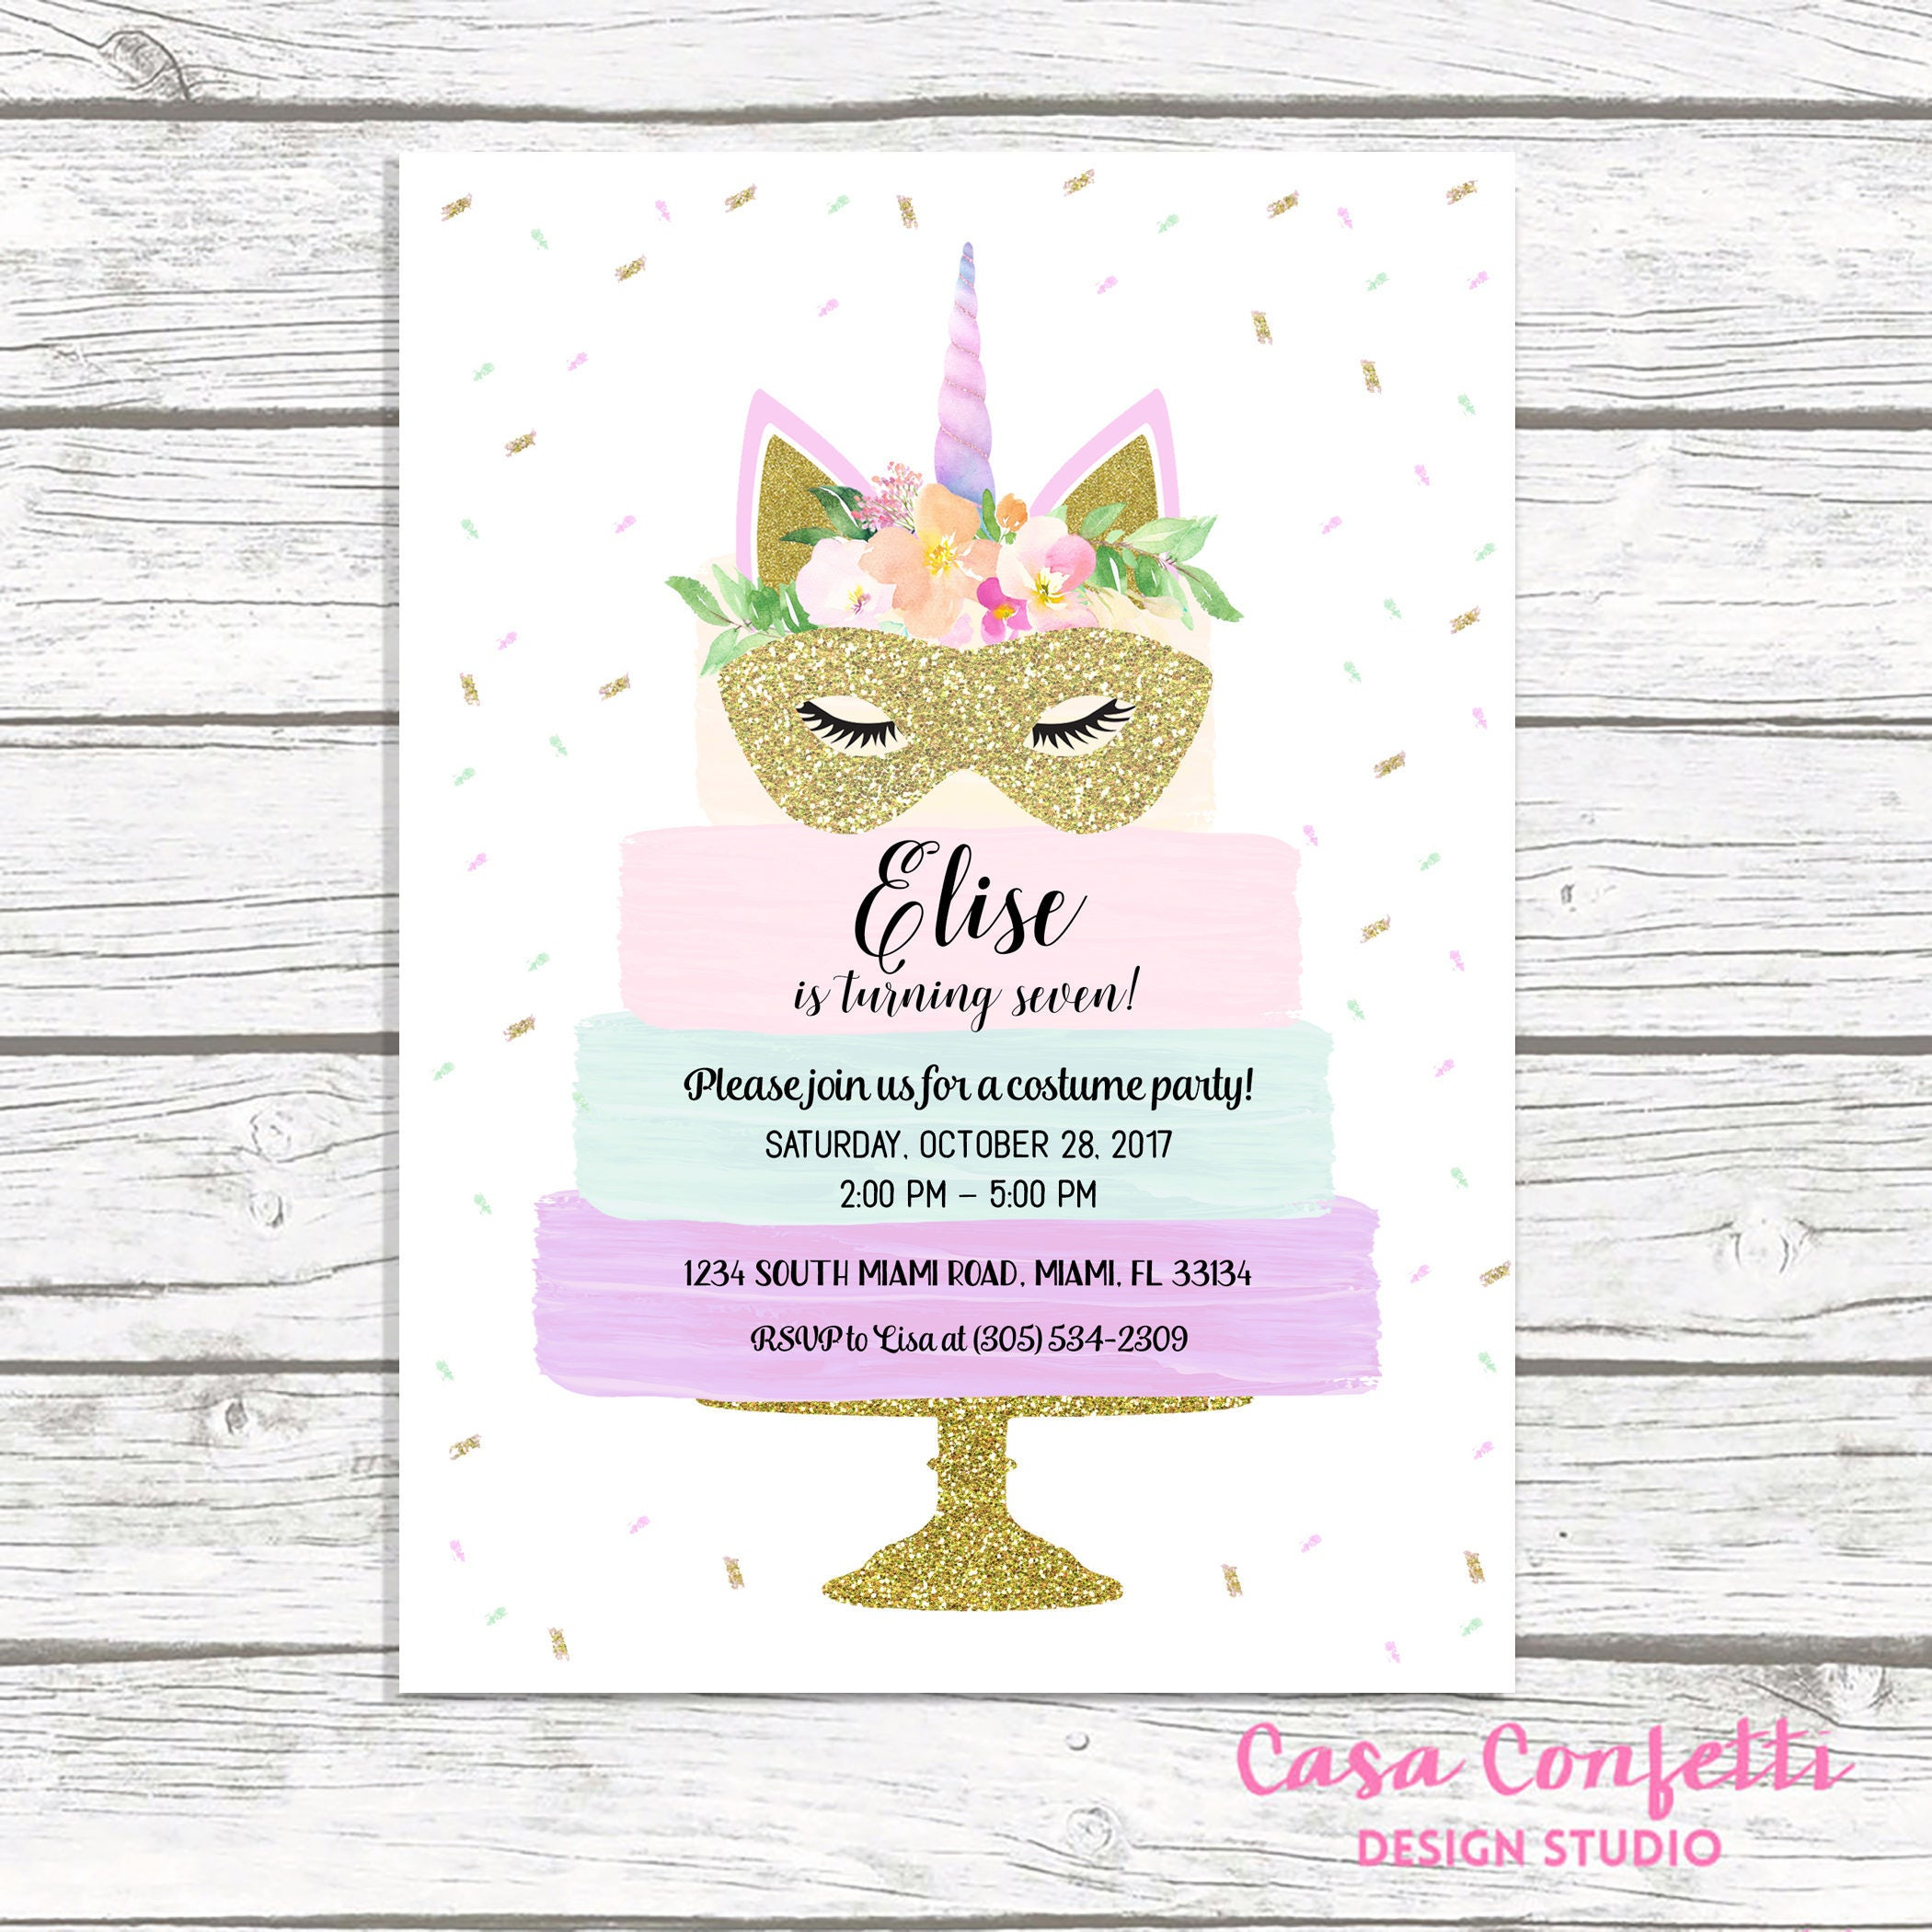 Halloween birthday invitation unicorn costume party invitation halloween birthday invitation unicorn costume party invitation unicorn halloween birthday invitation unicorn birthday invite kids party stopboris Choice Image